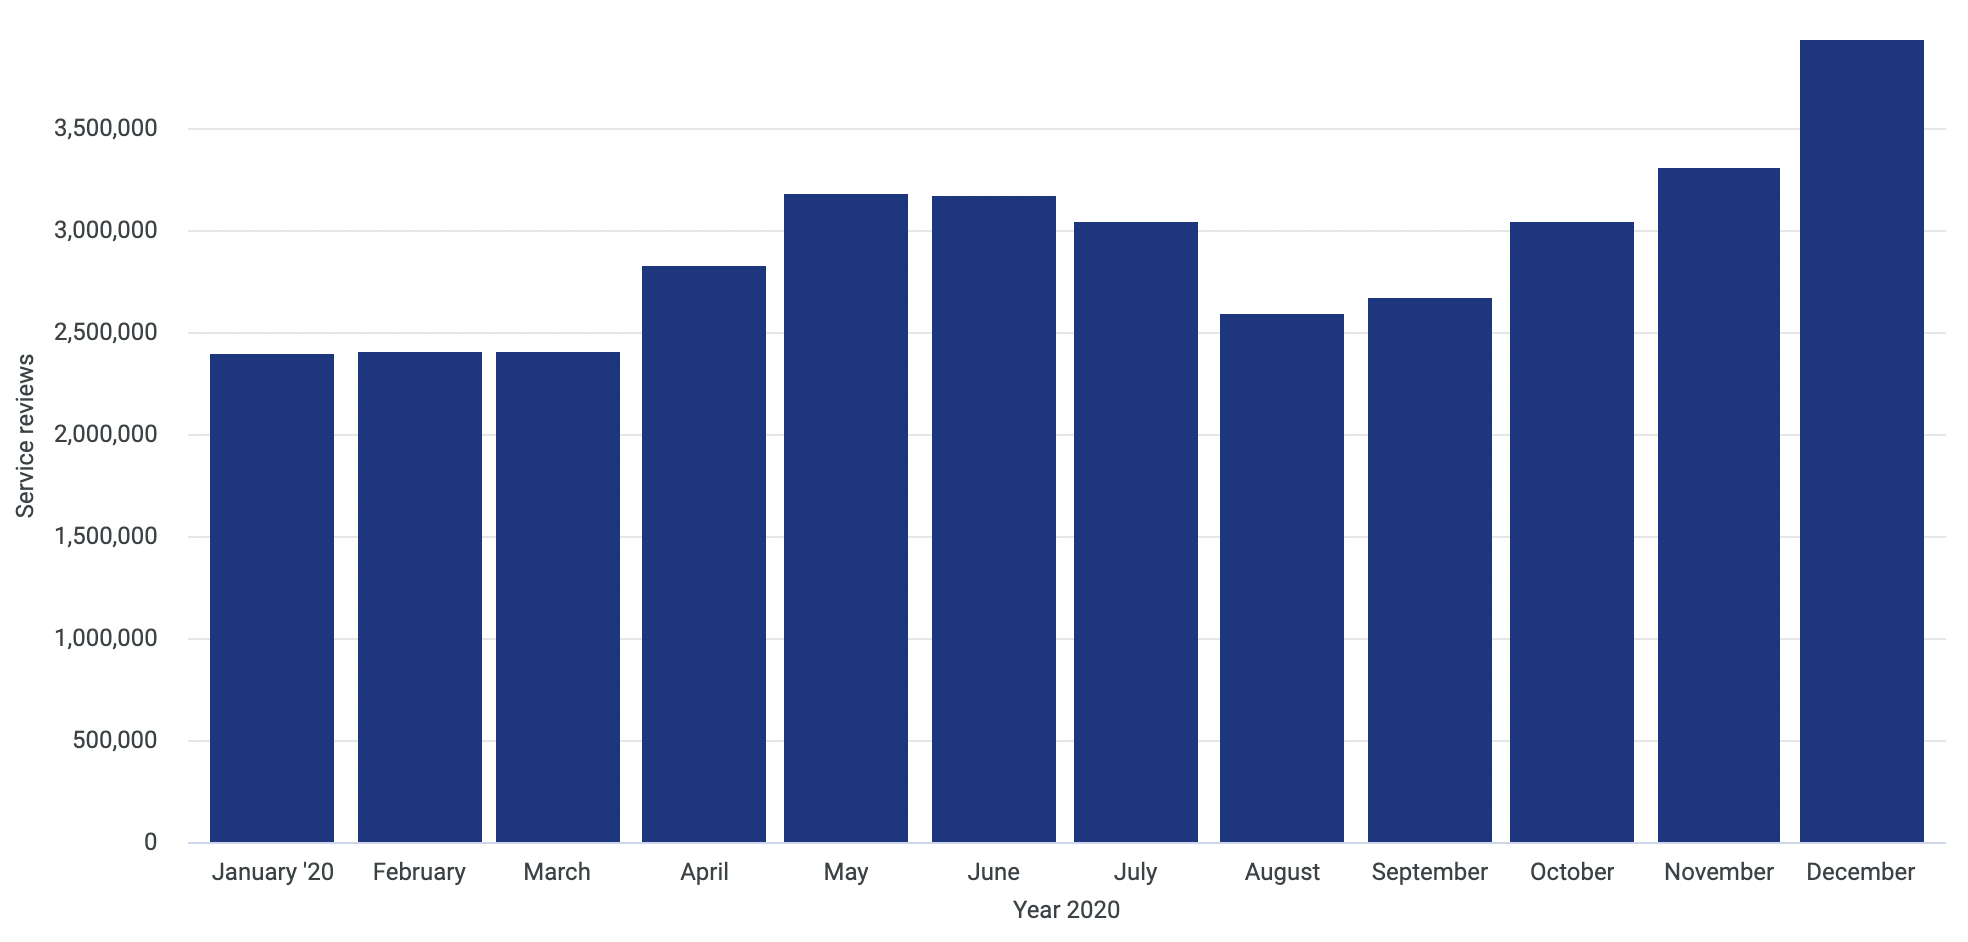 Service reviews left on Trustpilot.com between January 1st 2020 and December 31st 2020. Here, we can observe a significant increase in service reviews from October onwards.